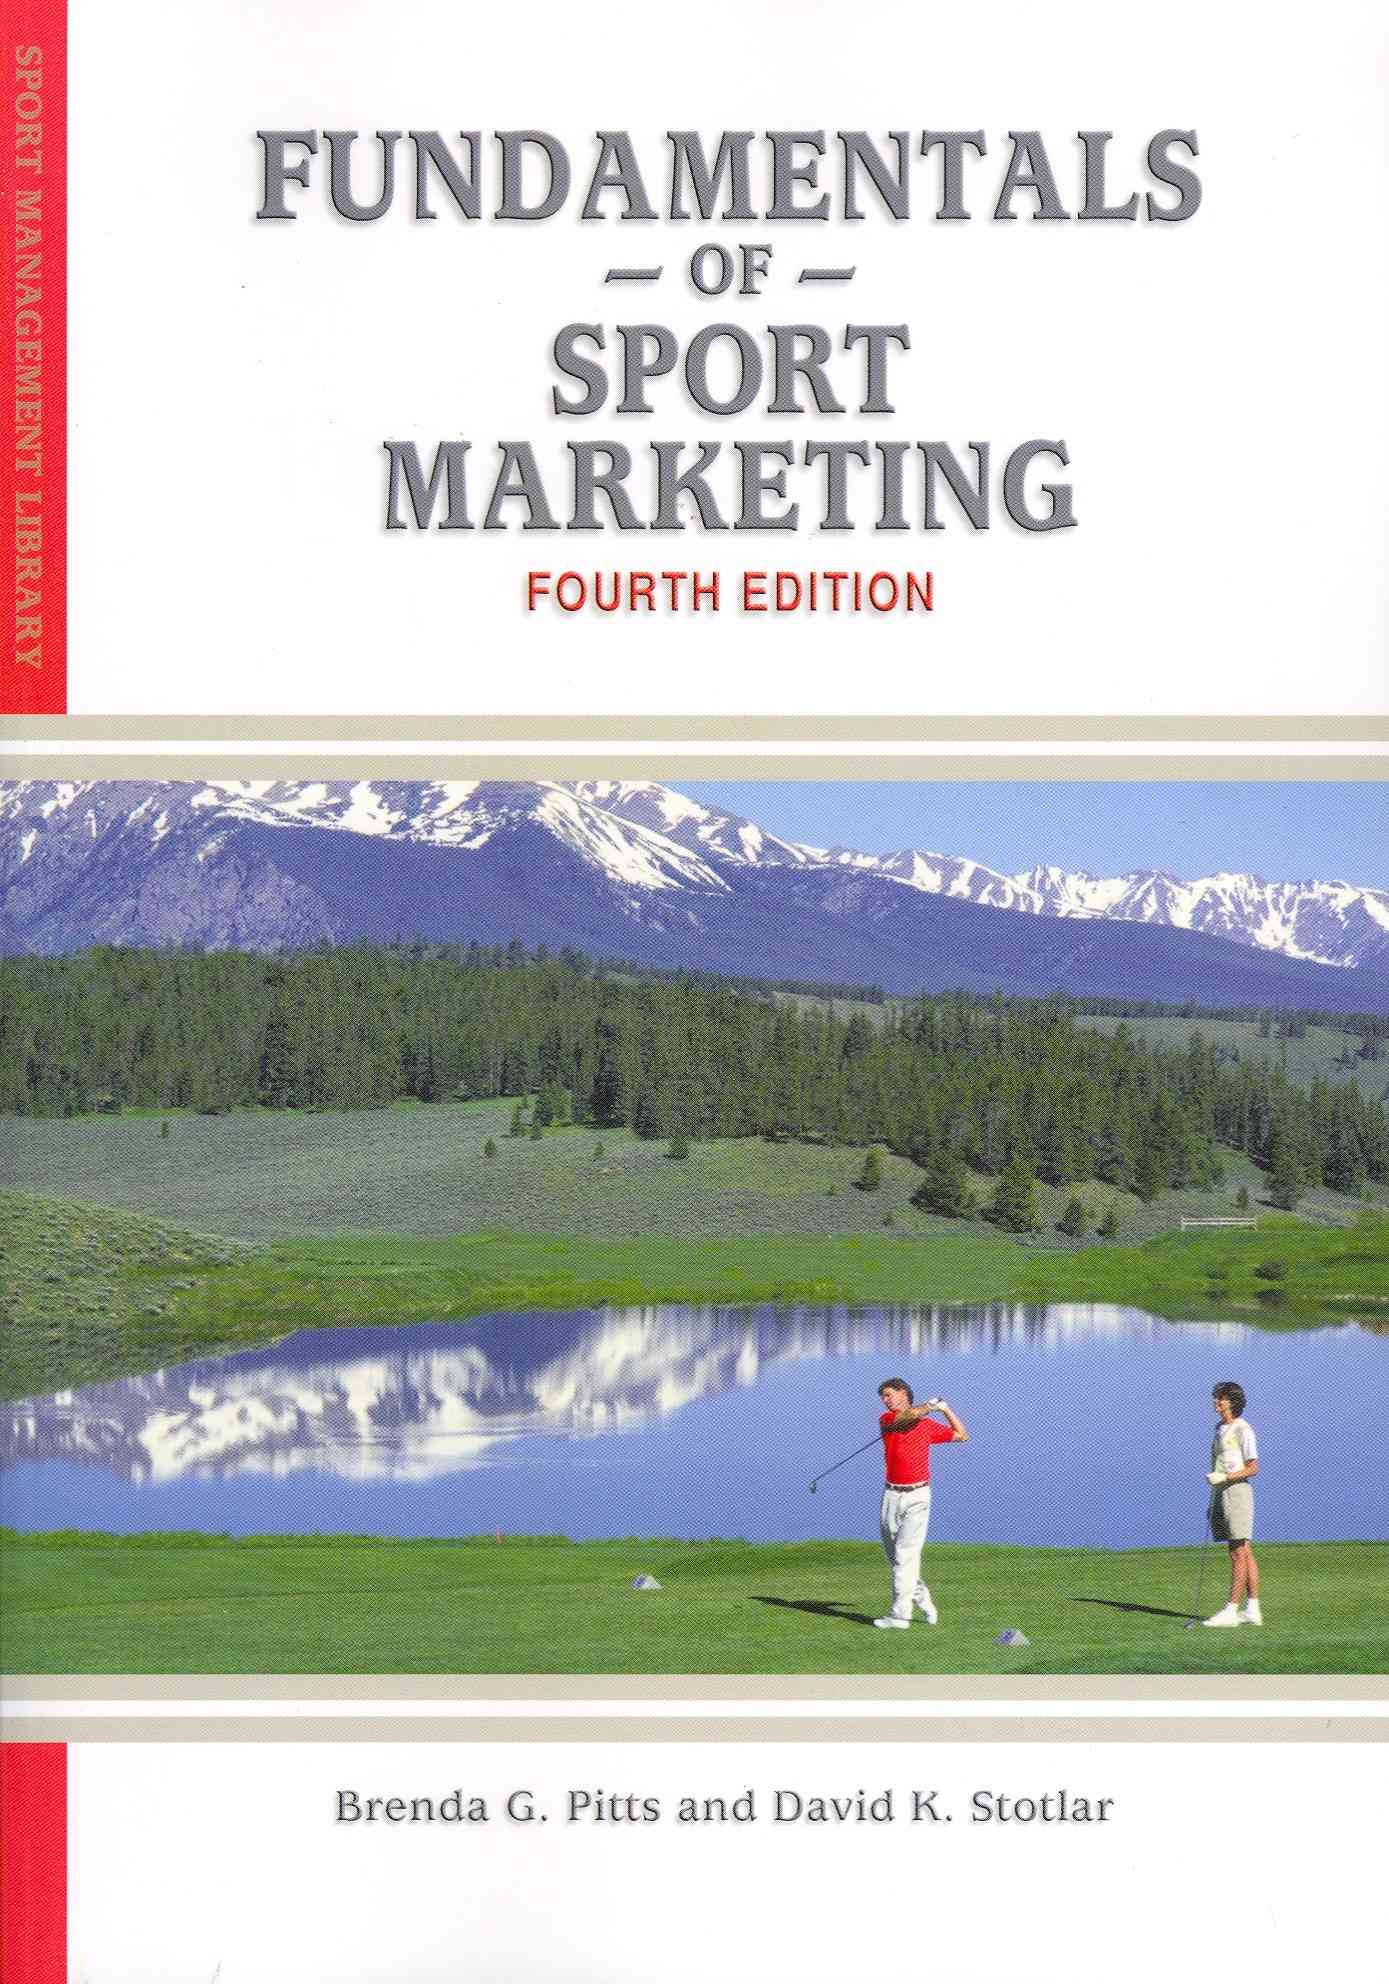 Fundamentals of Sport Marketing By Pitts, Brenda G./ Stotlar, David K.